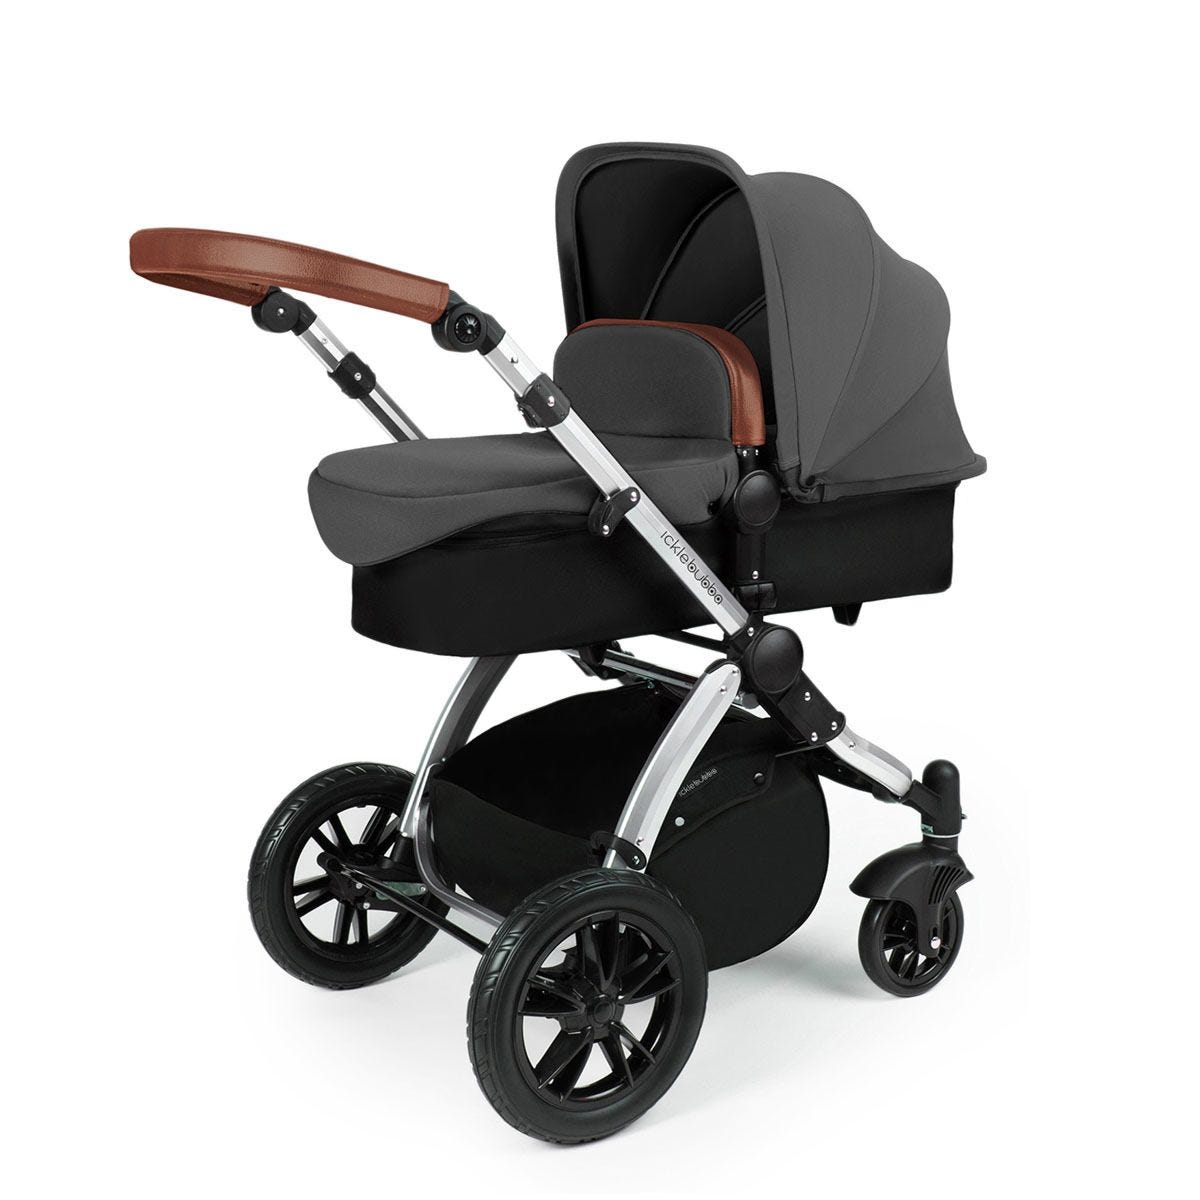 Ickle Bubba Stomp V3 2 in 1 Pushchair - Graphite Grey on Silver with Tan Handles